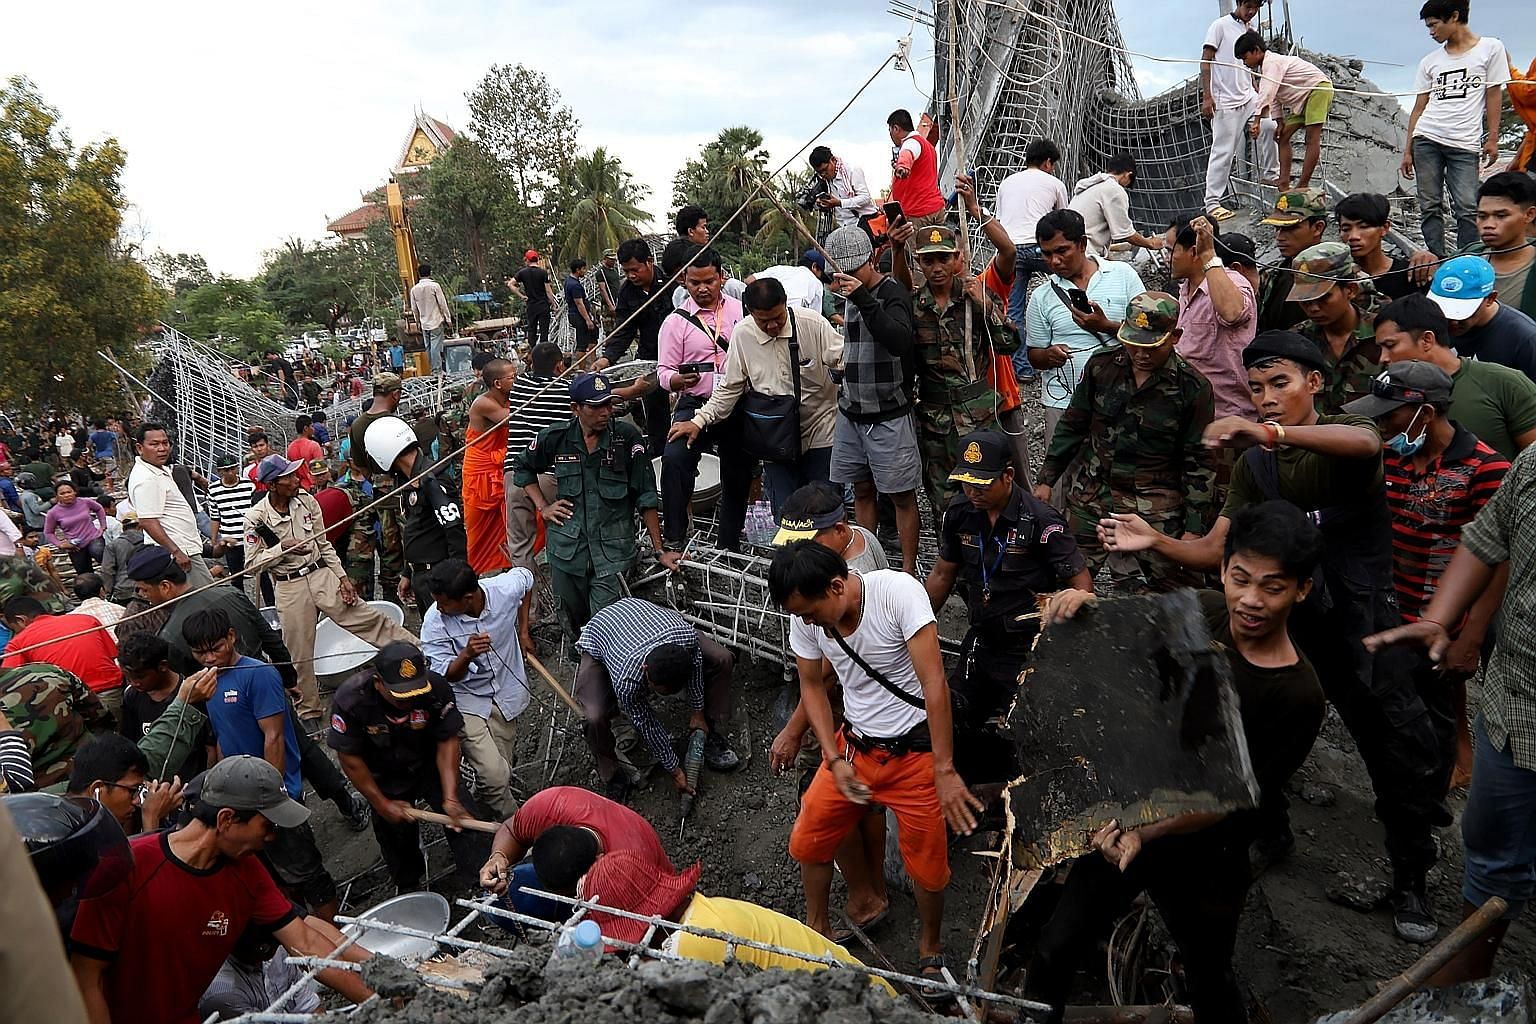 Cambodian rescuers searching for victims on Monday after a Buddhist temple that was being built in Siem Reap collapsed.